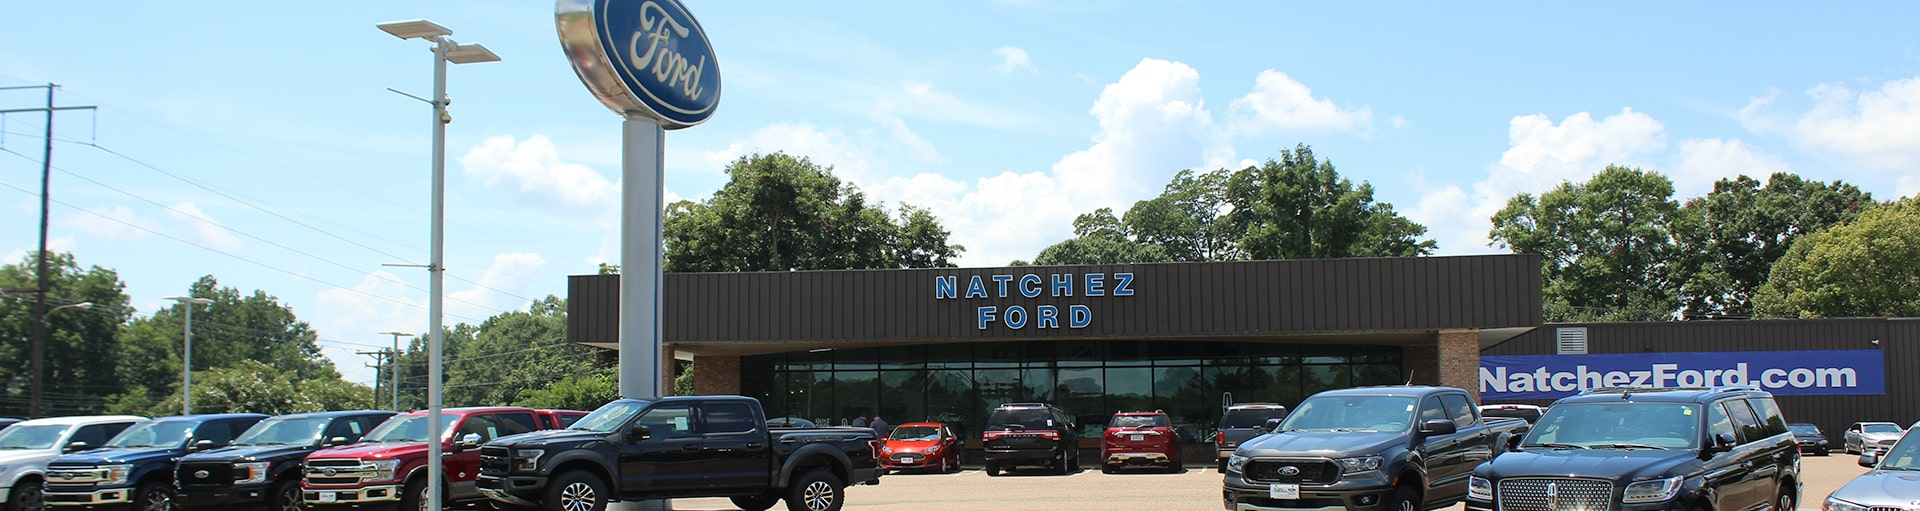 Natchez Ford Lincoln Brake Services